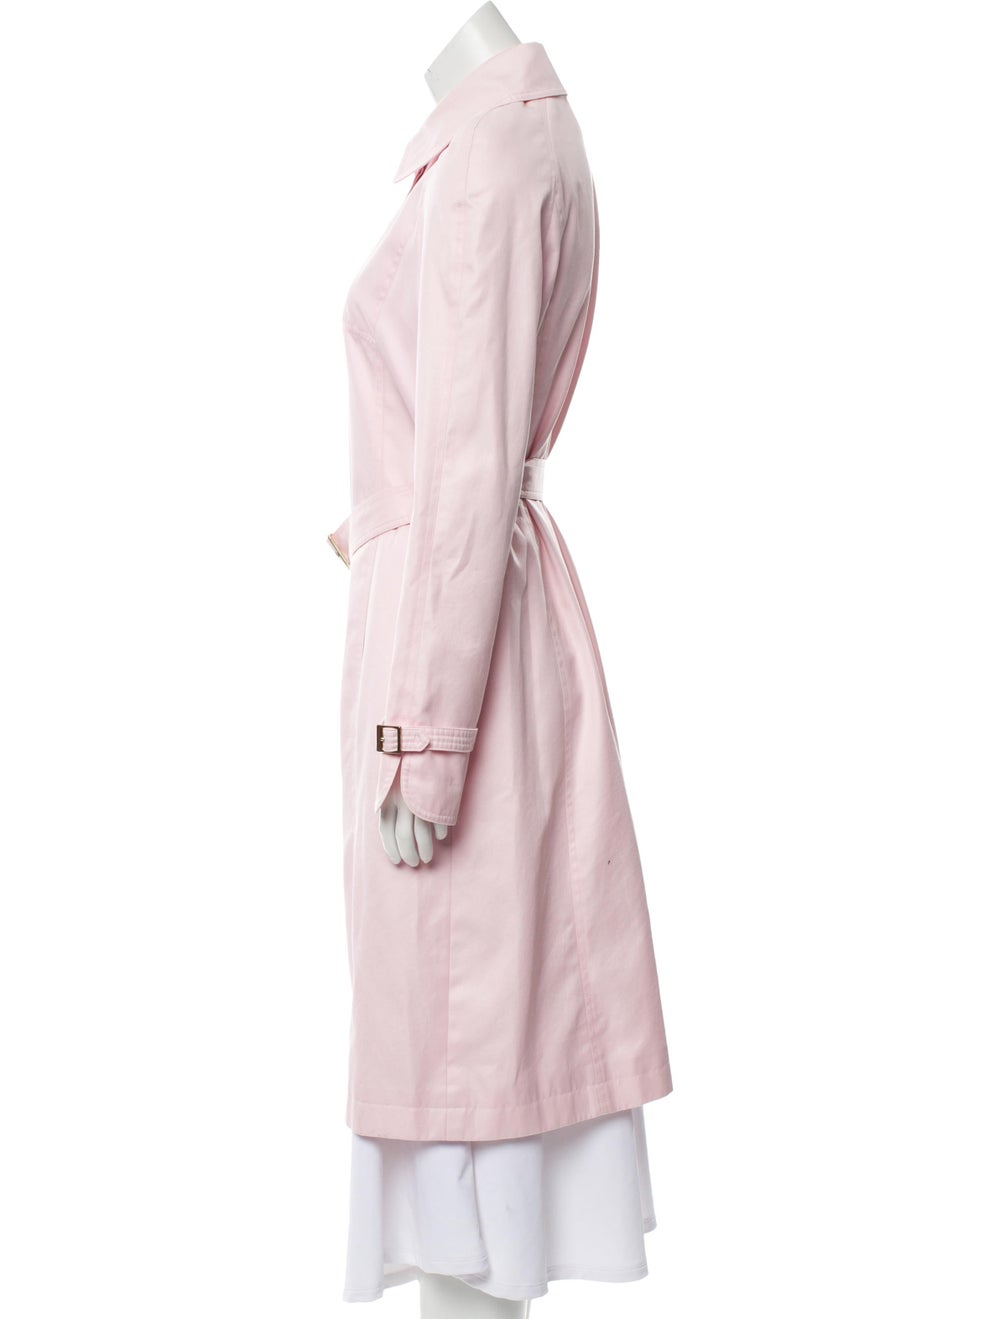 Escada Belted Long Coat Pink - image 2